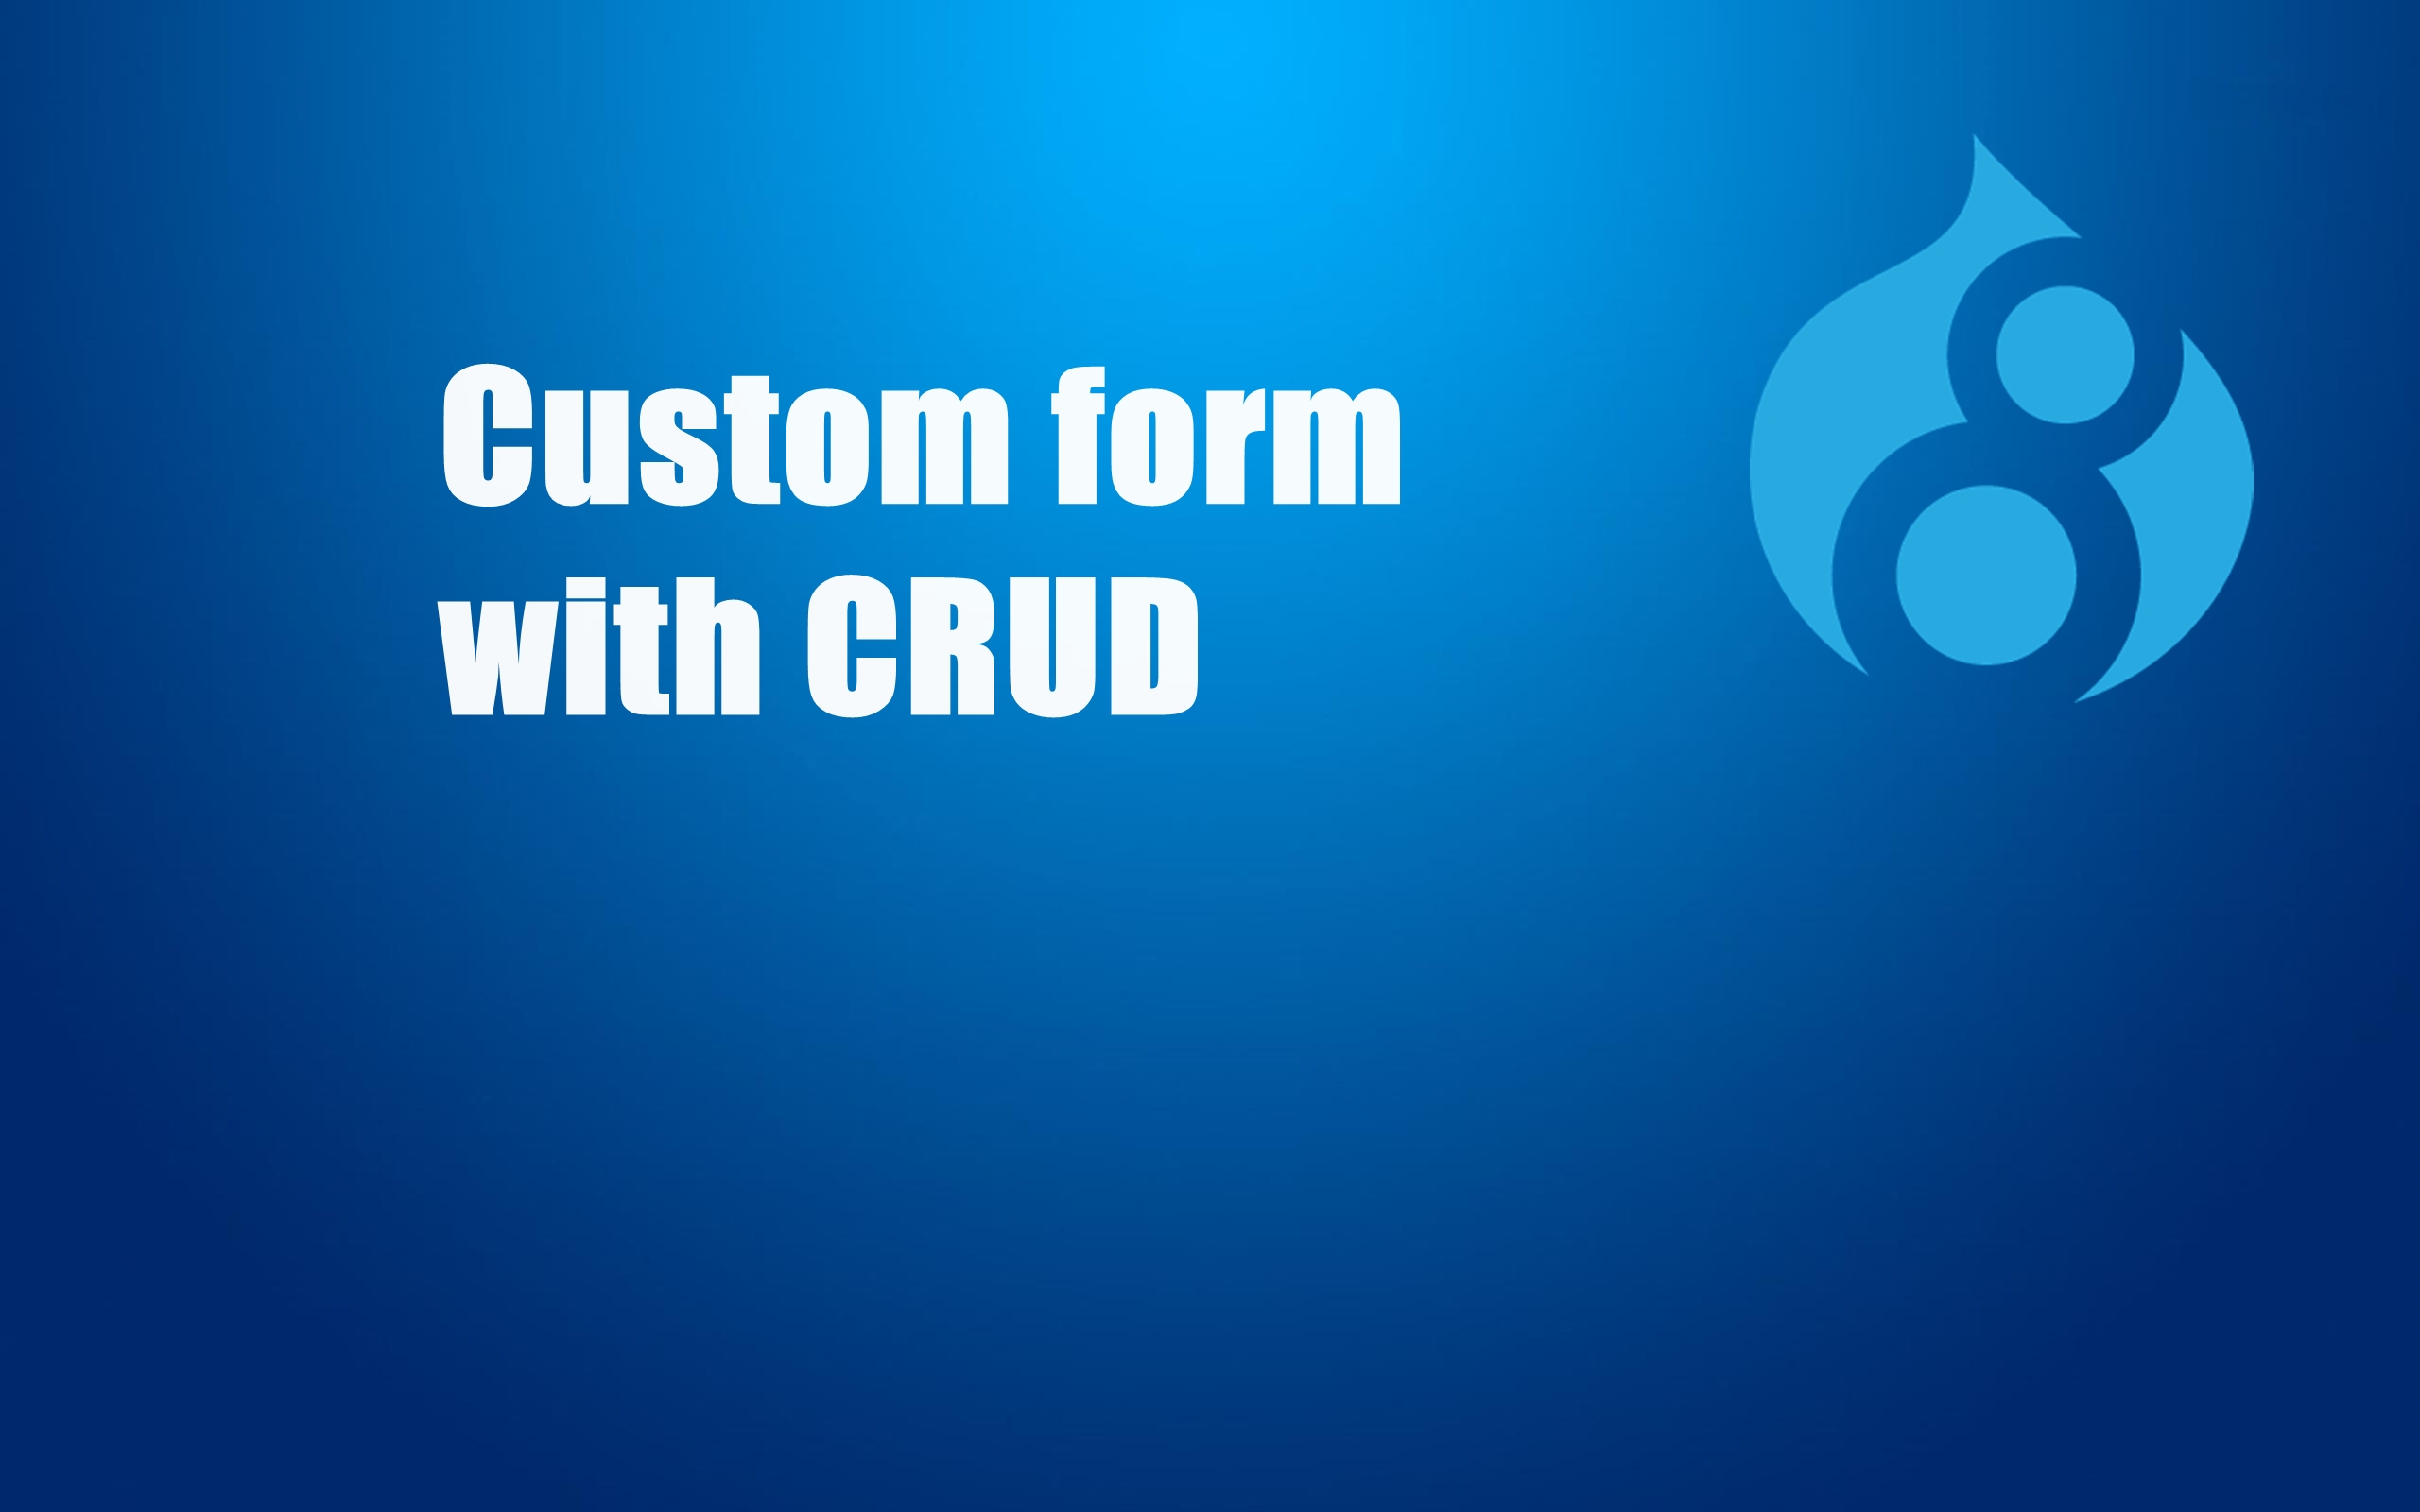 How to create custom Form with CRUD (Create, Delete, Update